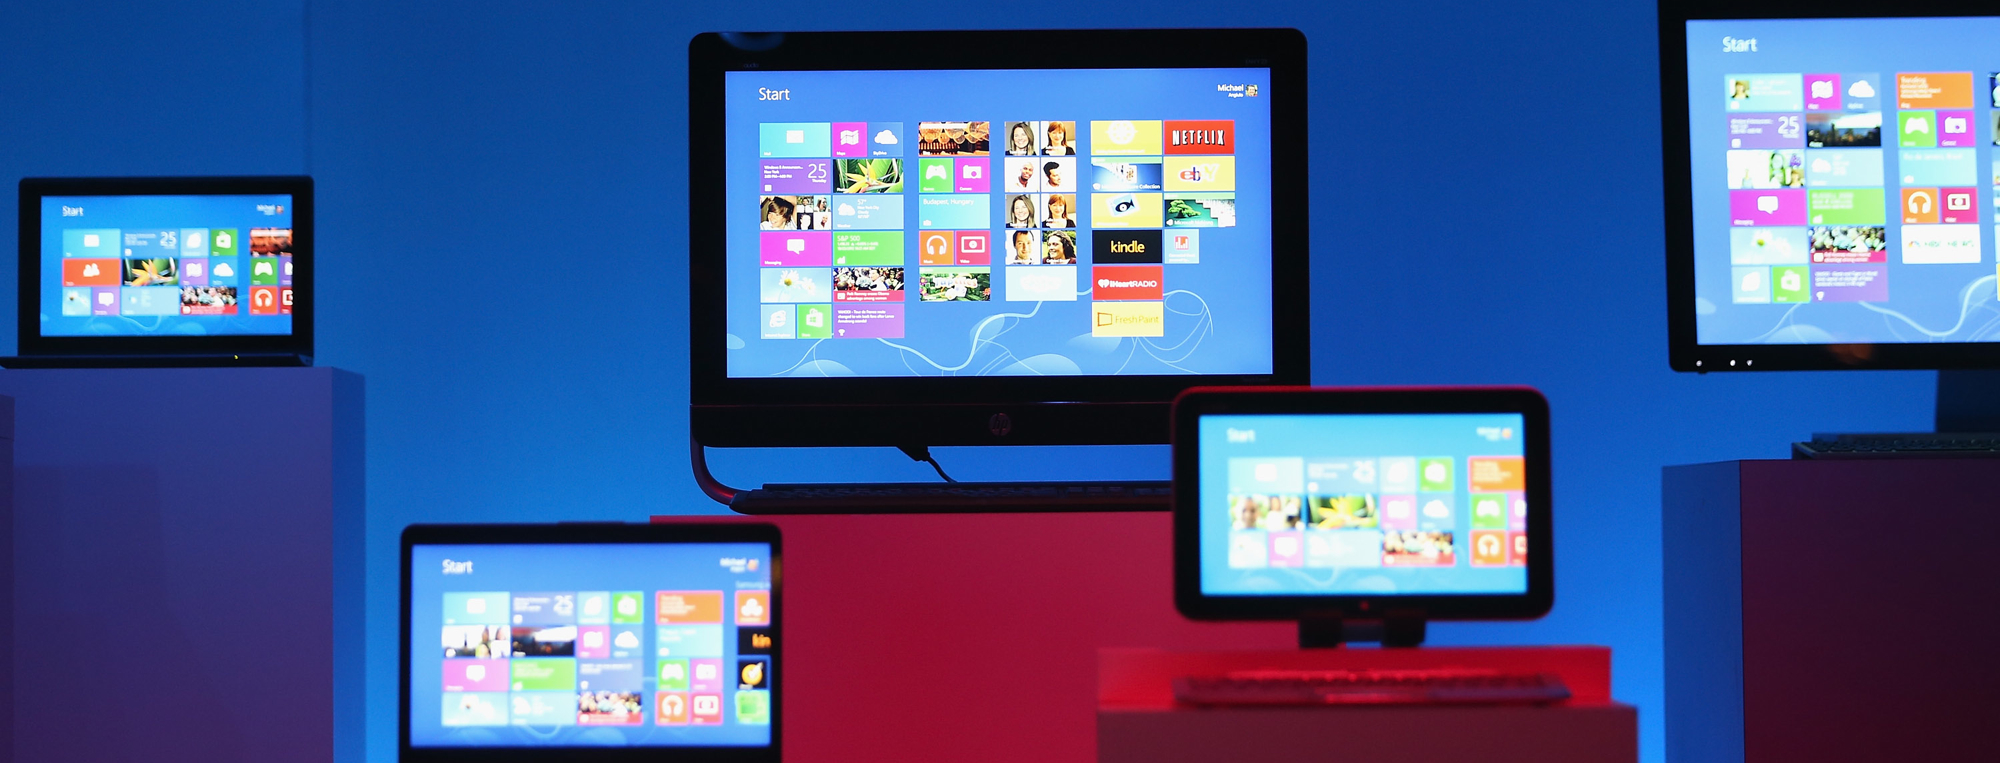 Windows 8.1 Passes Windows 8 in Market Share, Windows 7 Over 50%